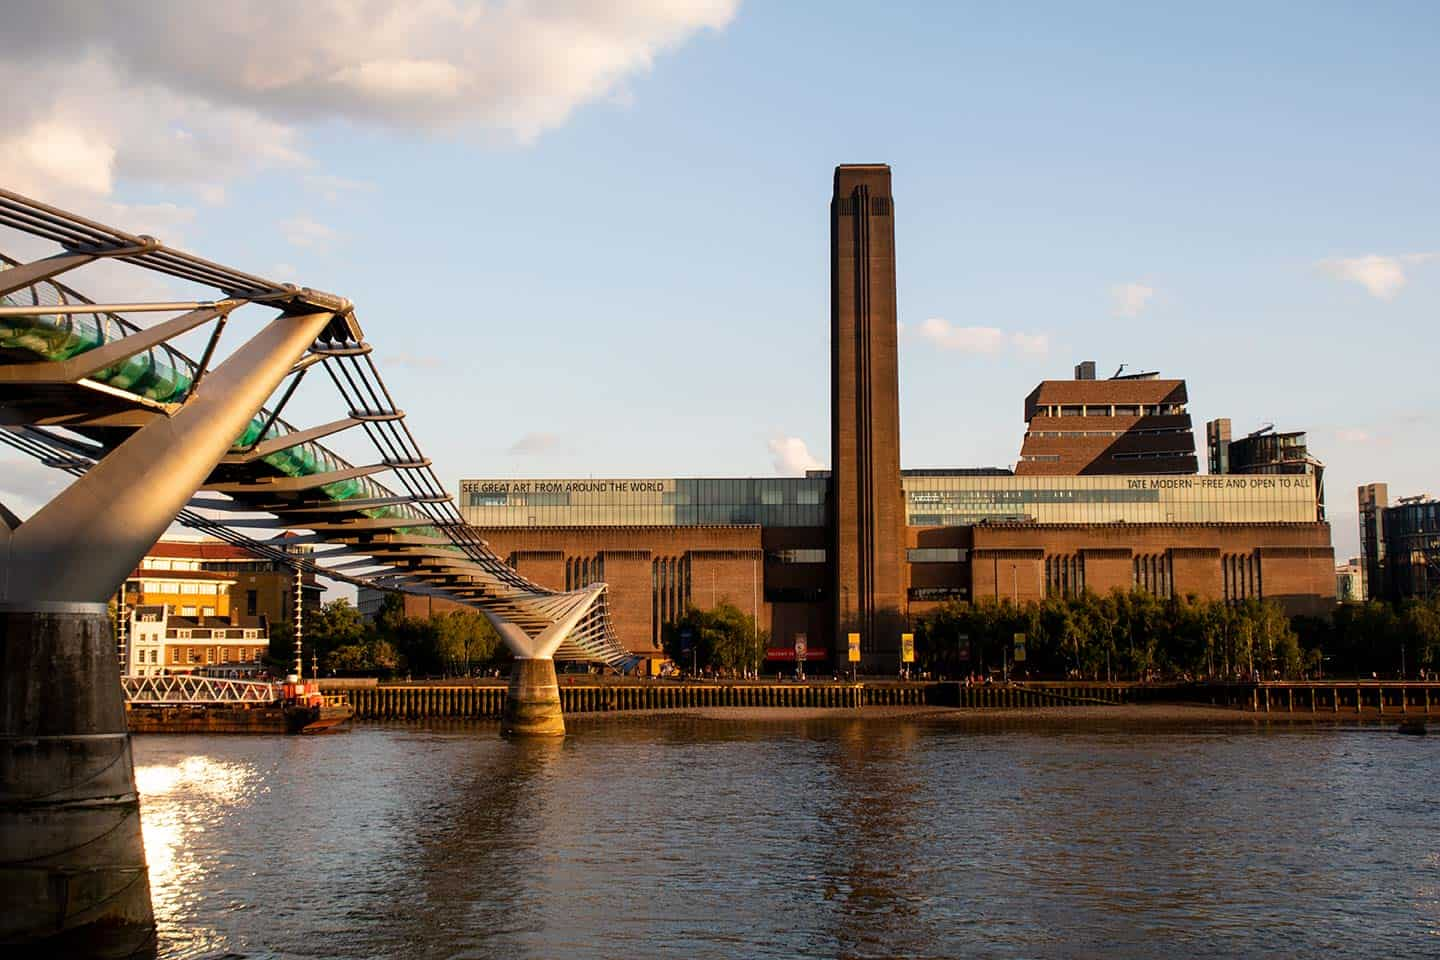 Image of the Millennium Bridge and Tate Modern art gallery, London